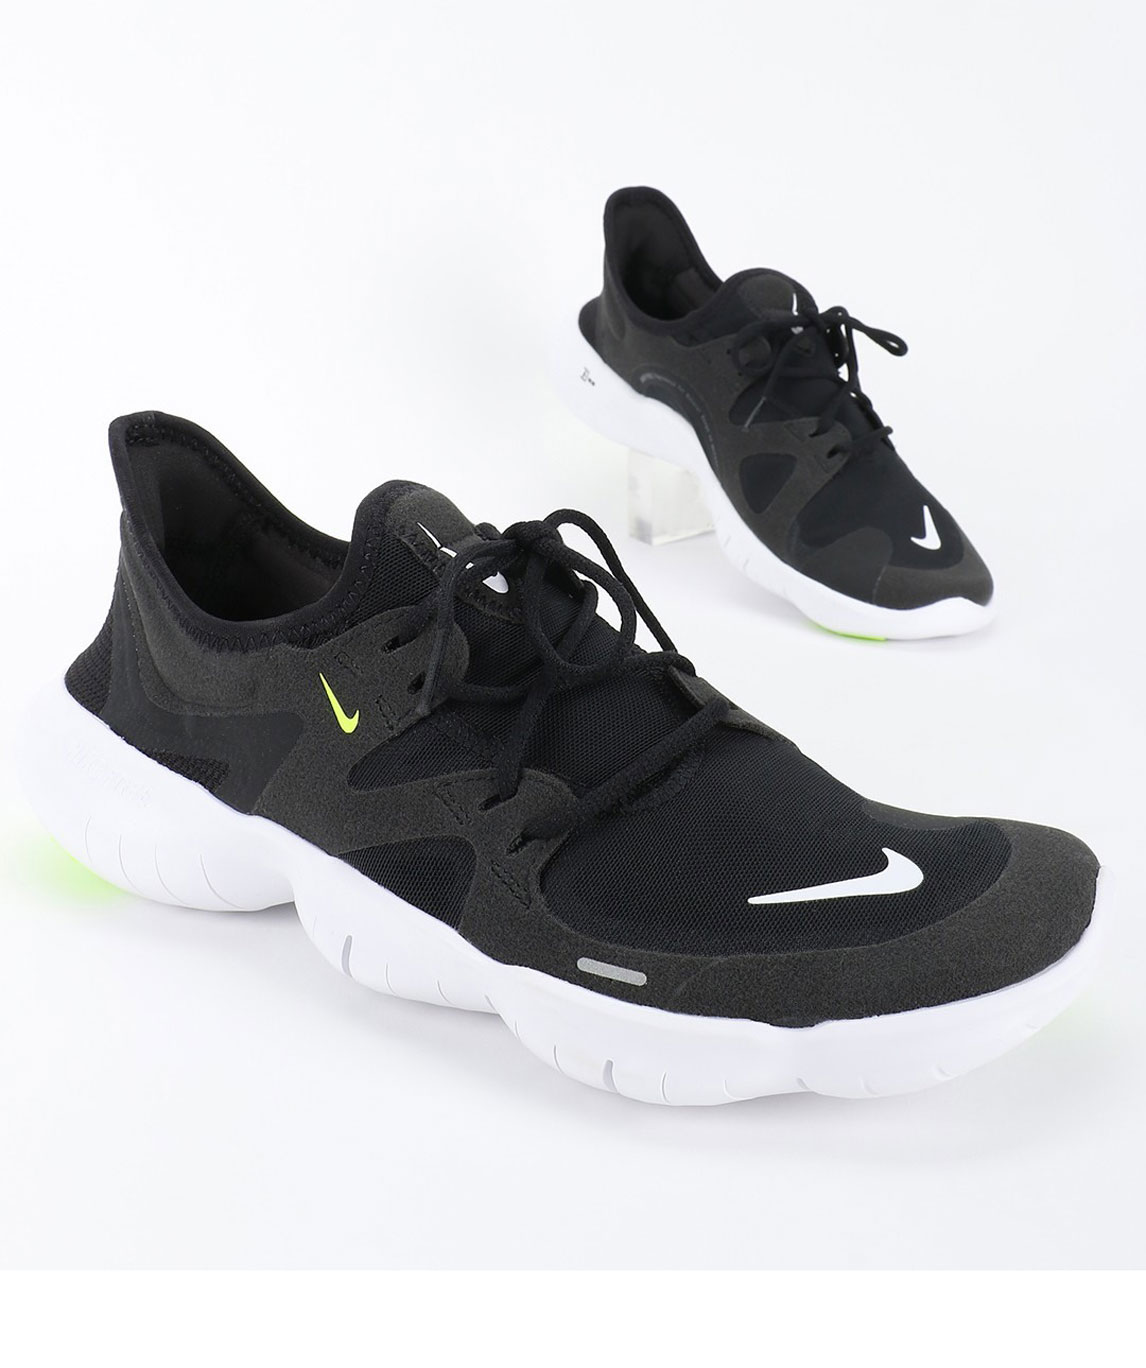 NIKE FREE RN 5.0 LACE-UP SPORTS SHOES